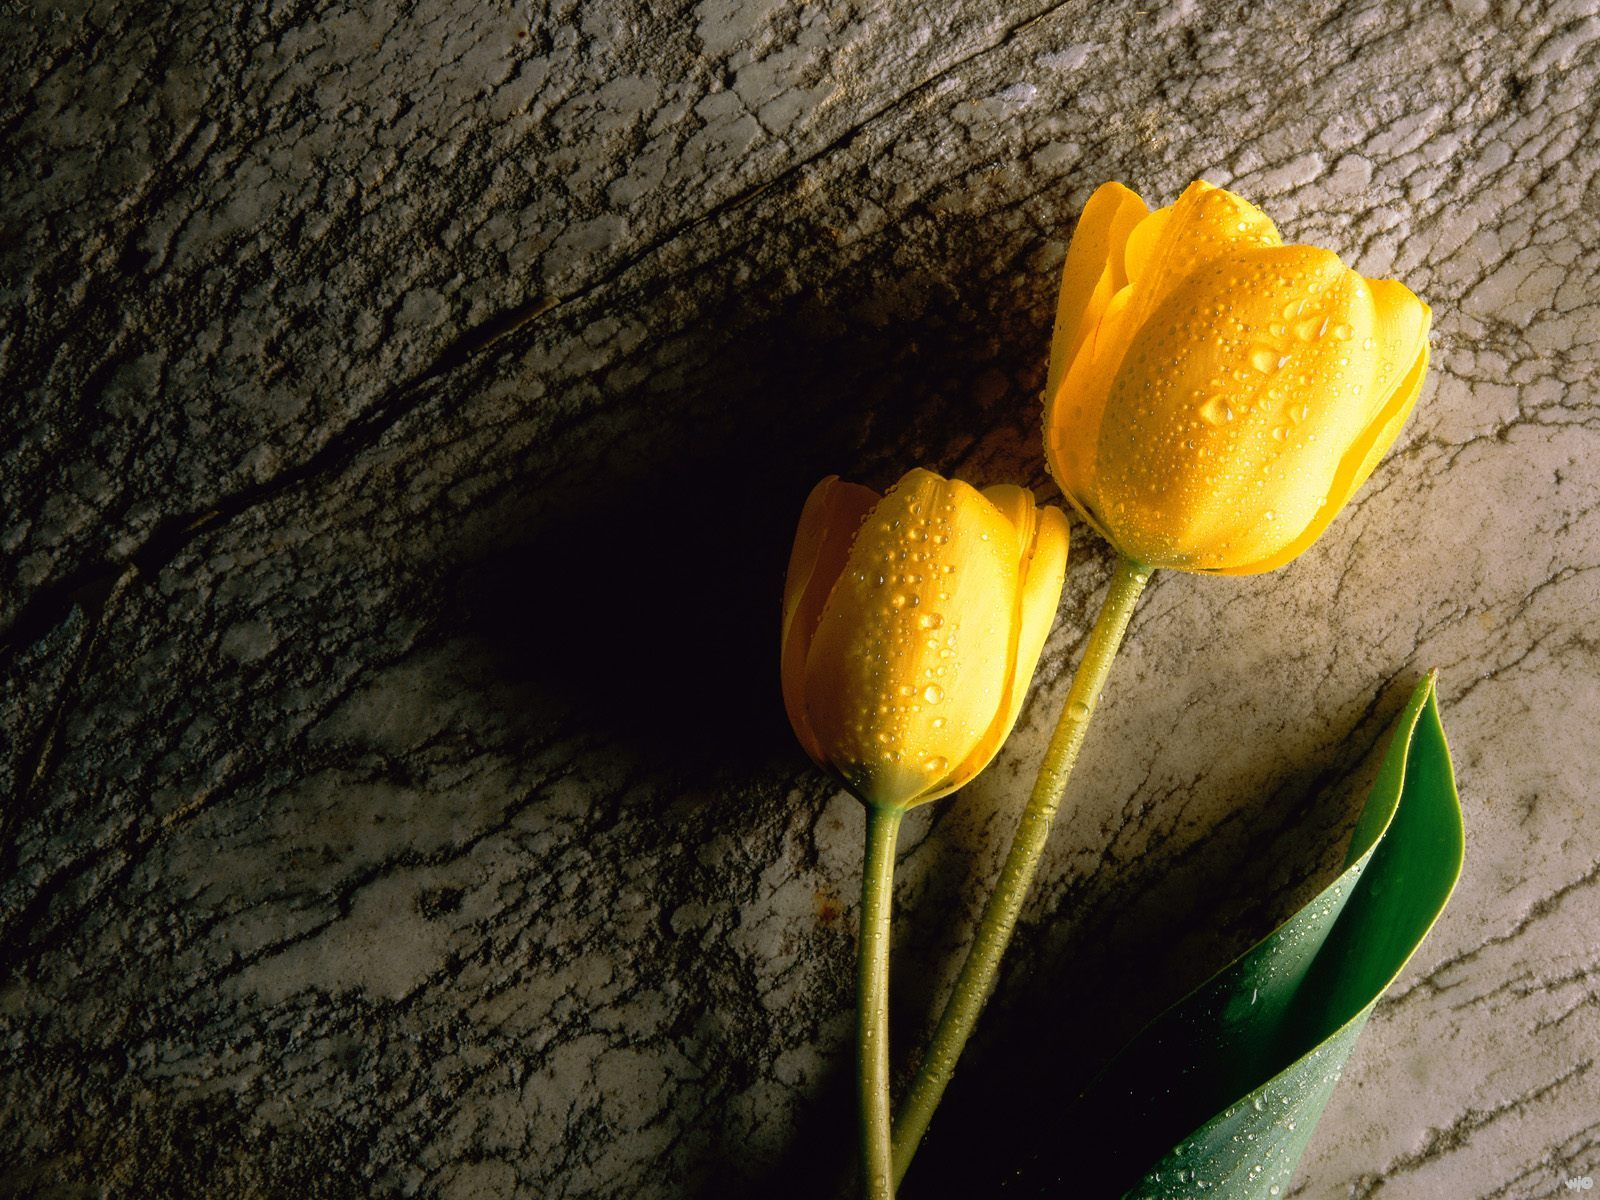 two wet yellow tulips wallpapers - Wallpaper two wet yellow tulips Wallpapers HD